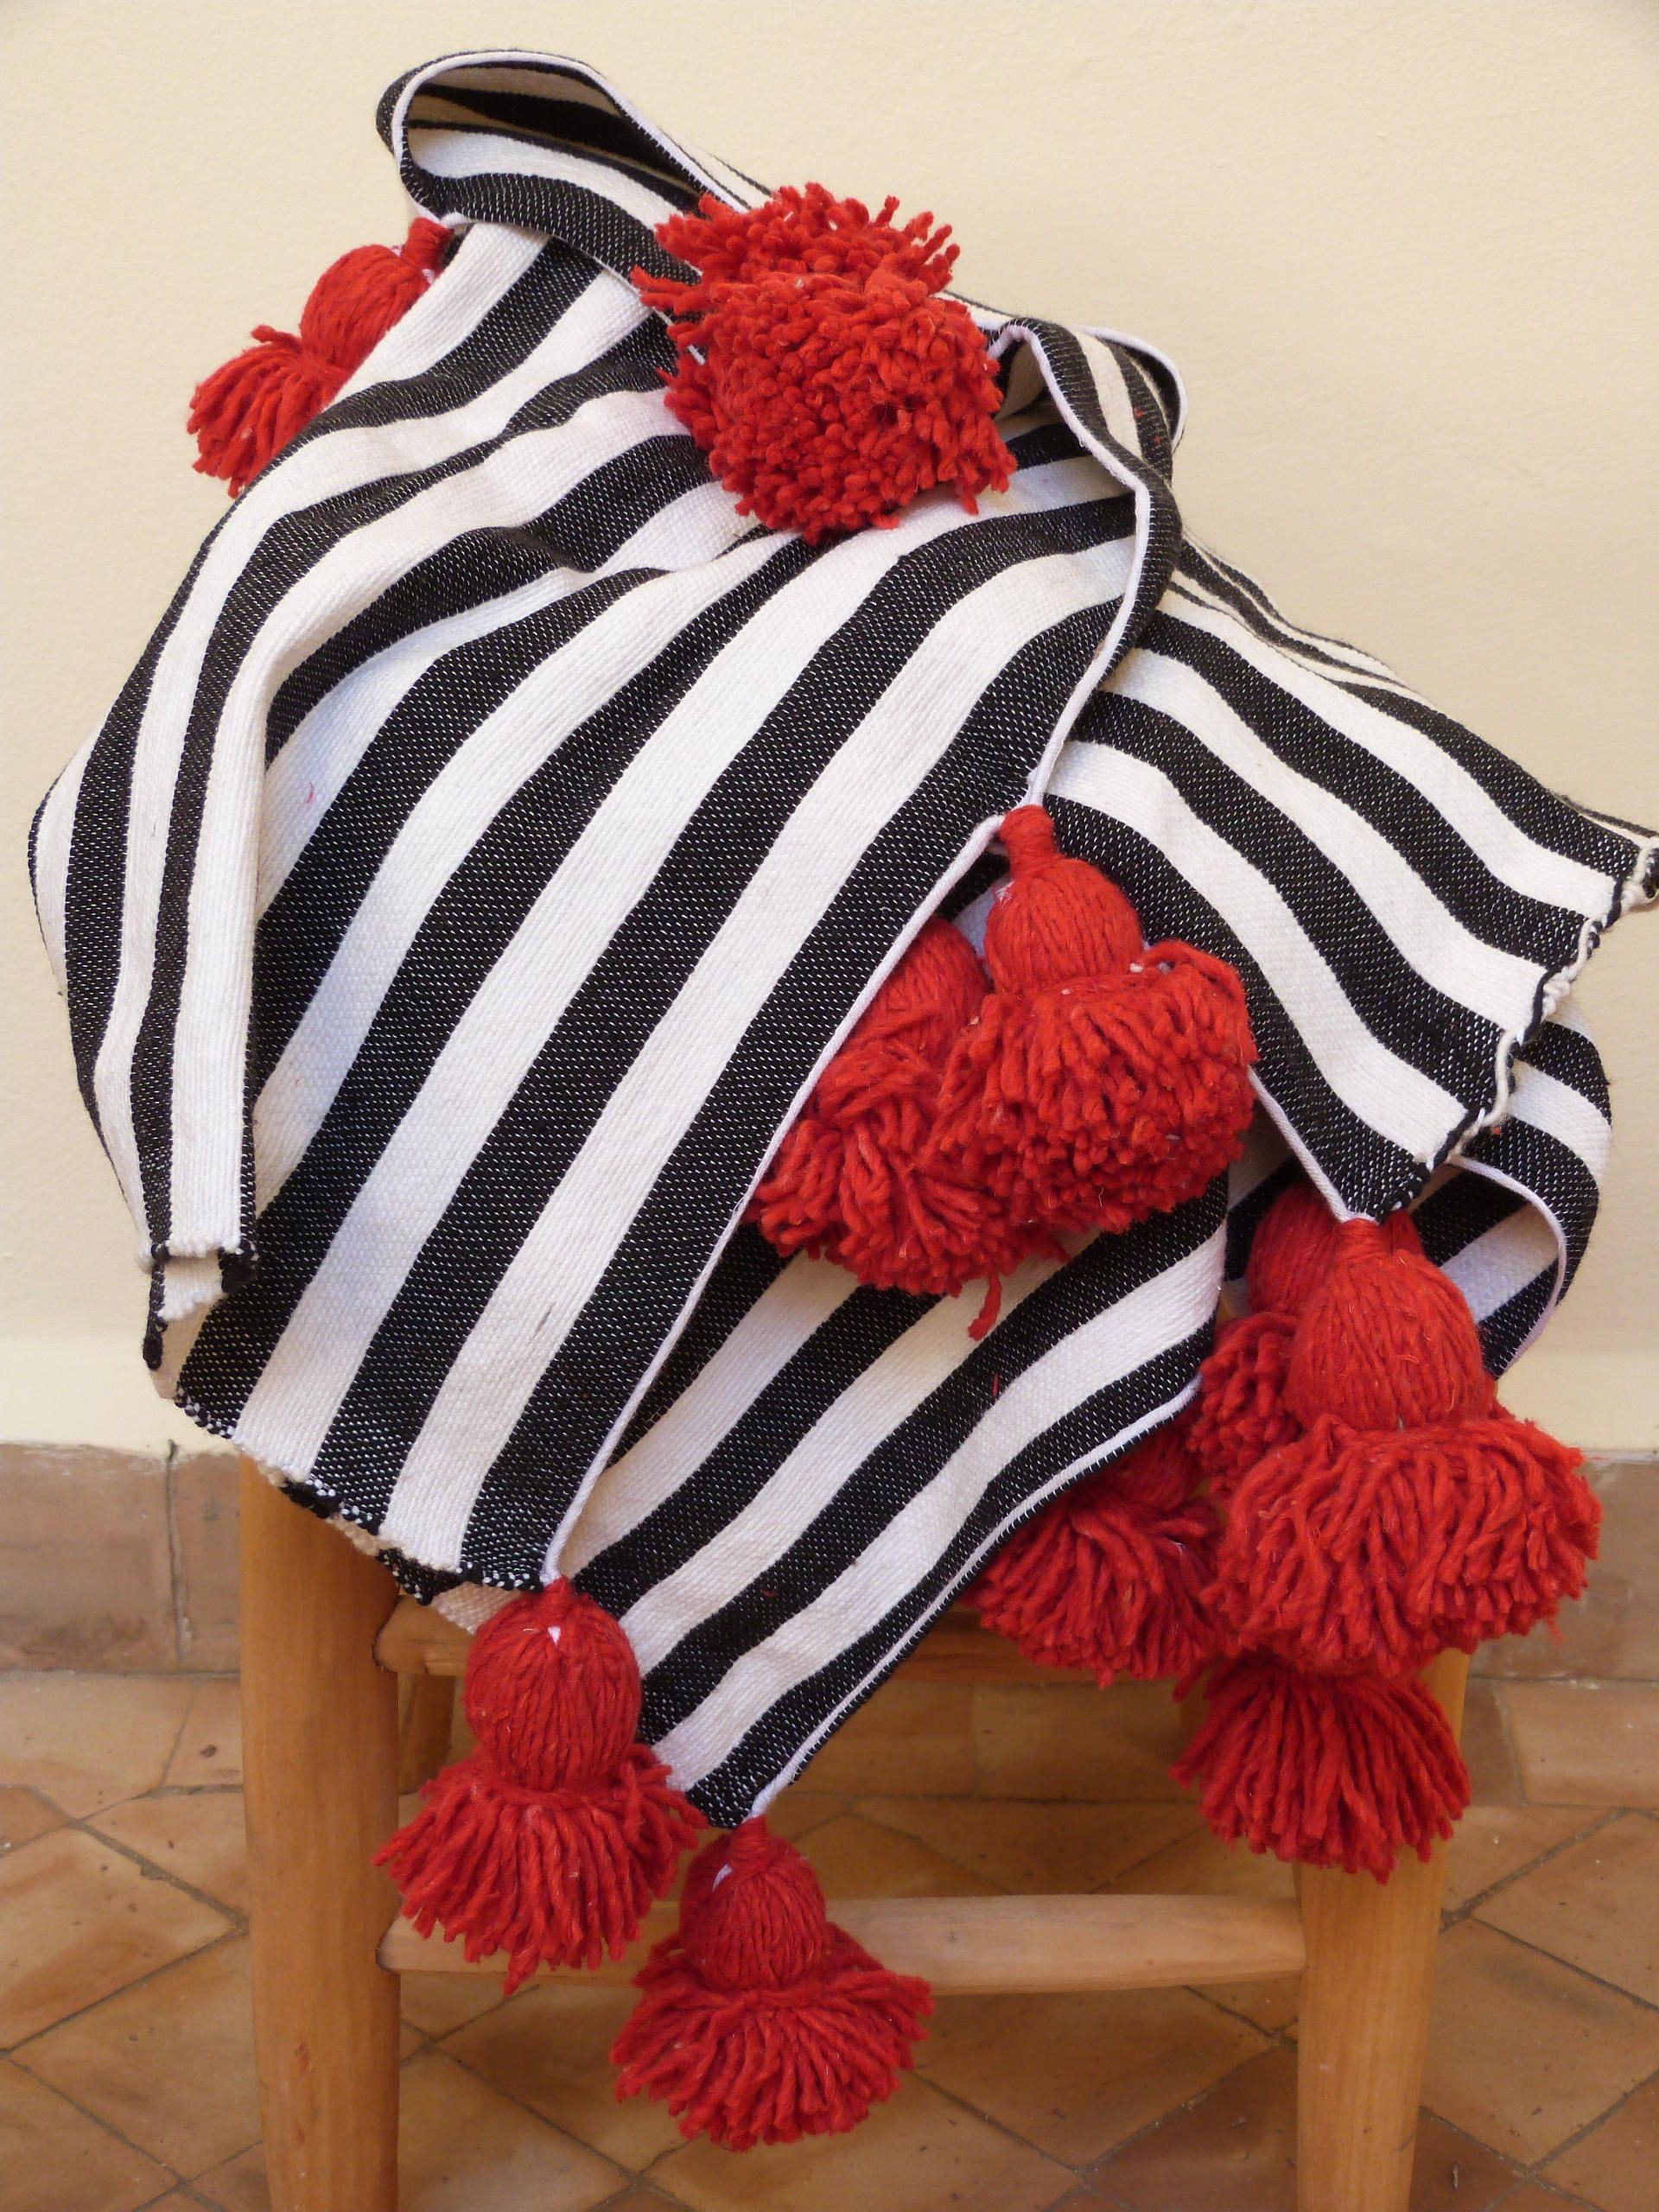 Moroccan Stripes Pom Pom Blankets, Black And White Throw Blanket,